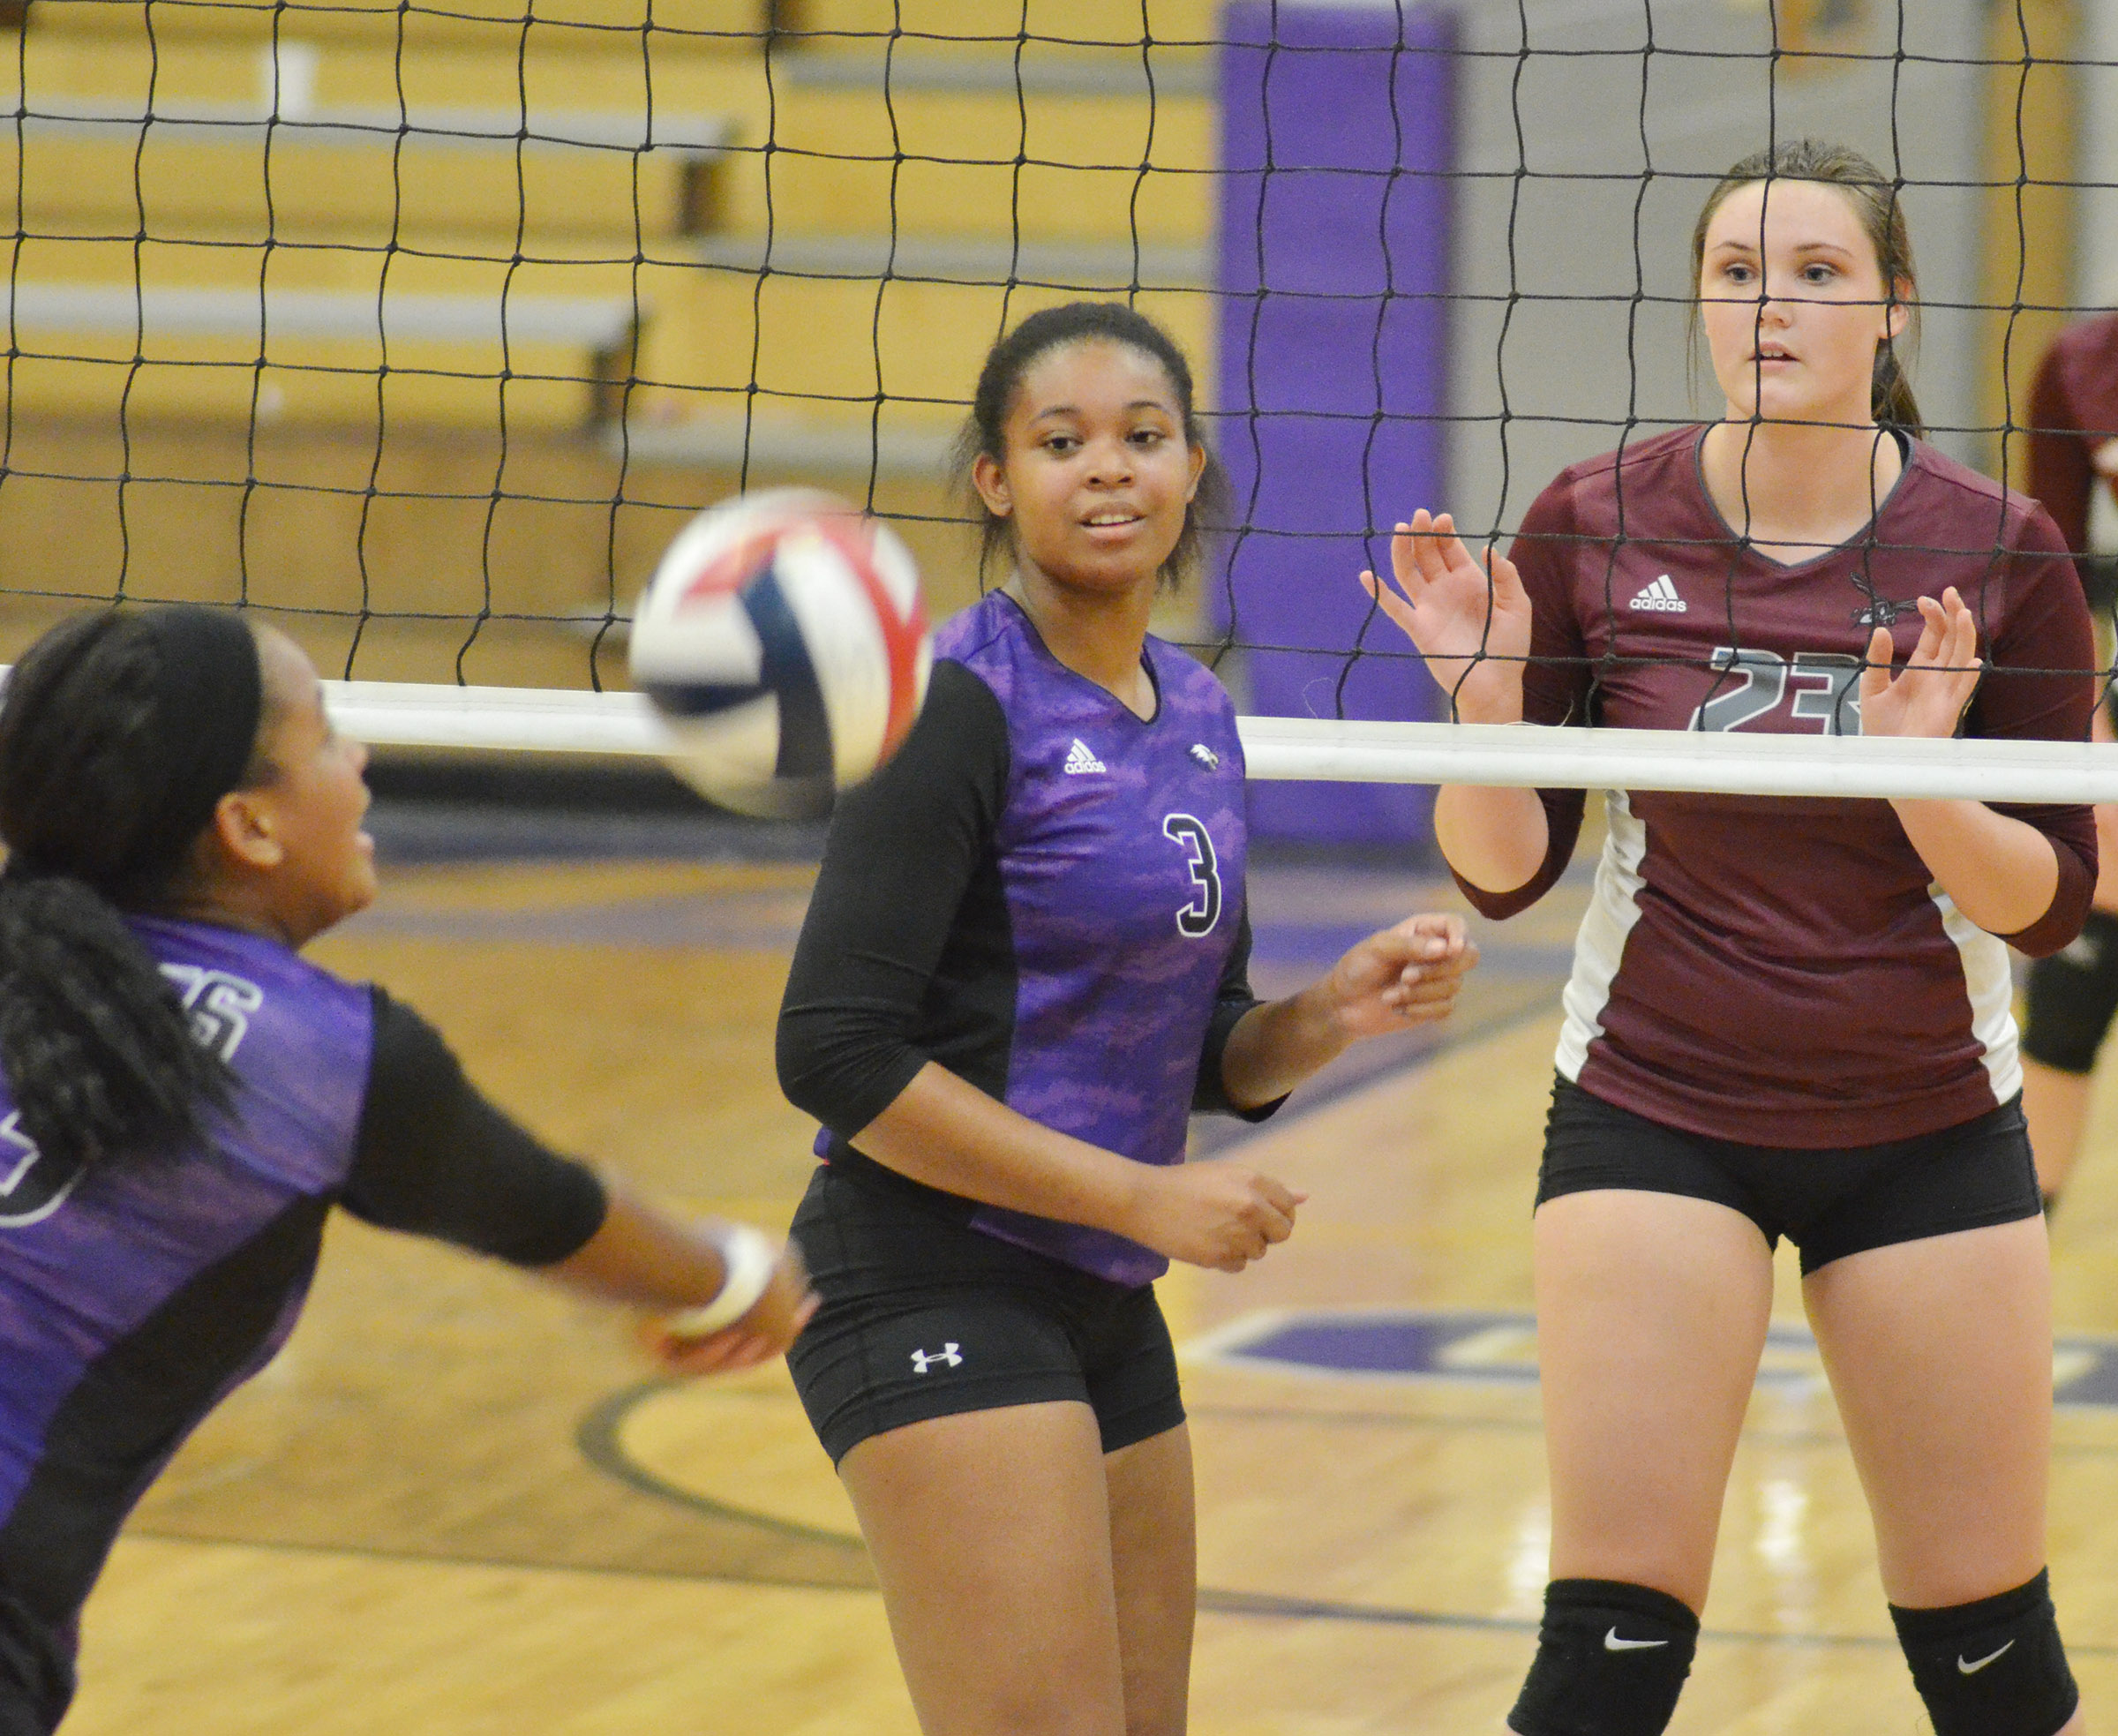 CHS senior Vonnea Smith watches as classmate Kayla Young hits the ball.